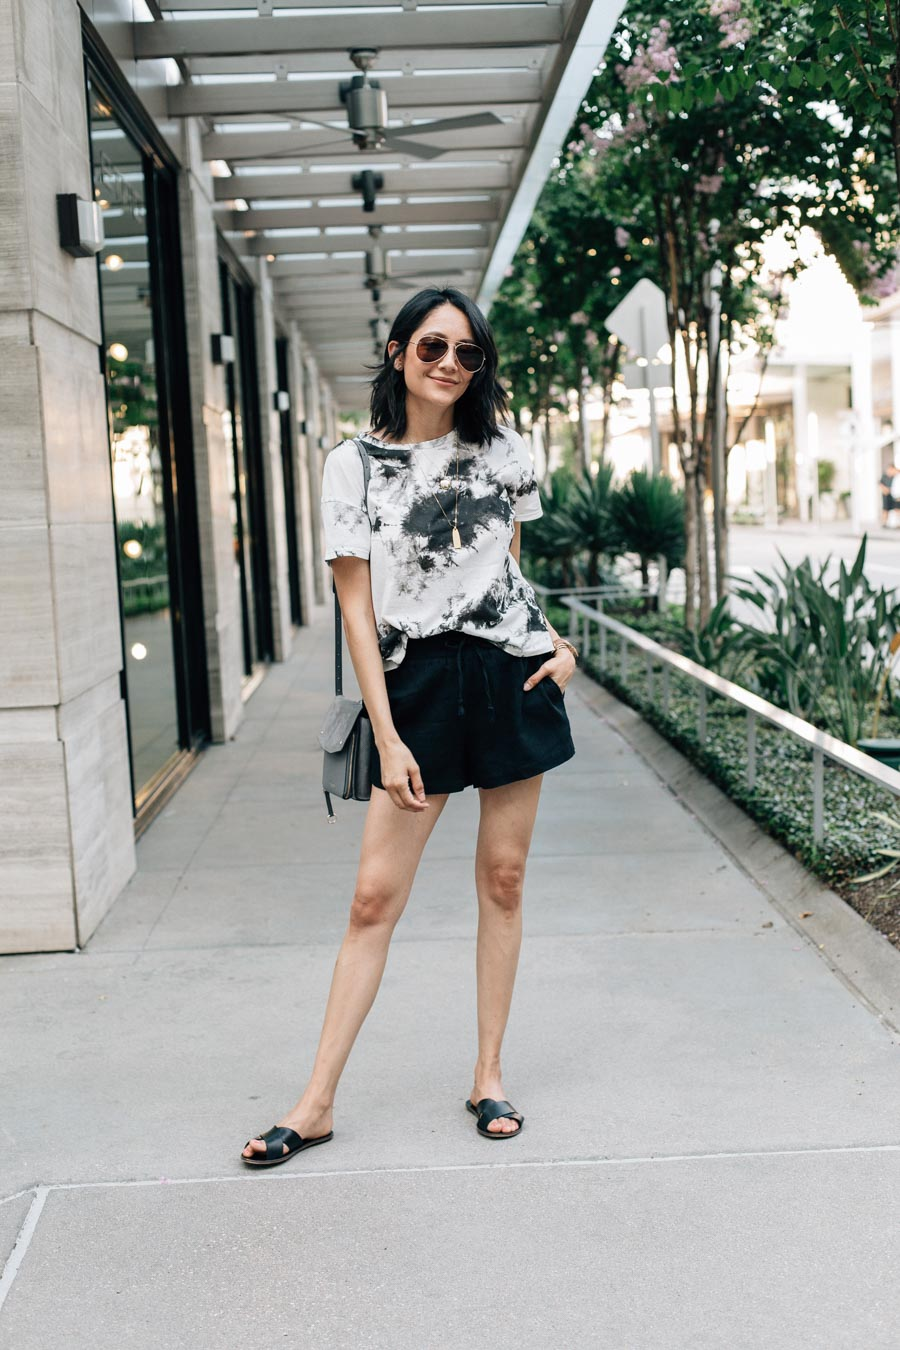 Lilly Beltran shows you how to wear the tie-dye trend as a neutral with a black and white tie-dye t-shirt and back linen shorts.